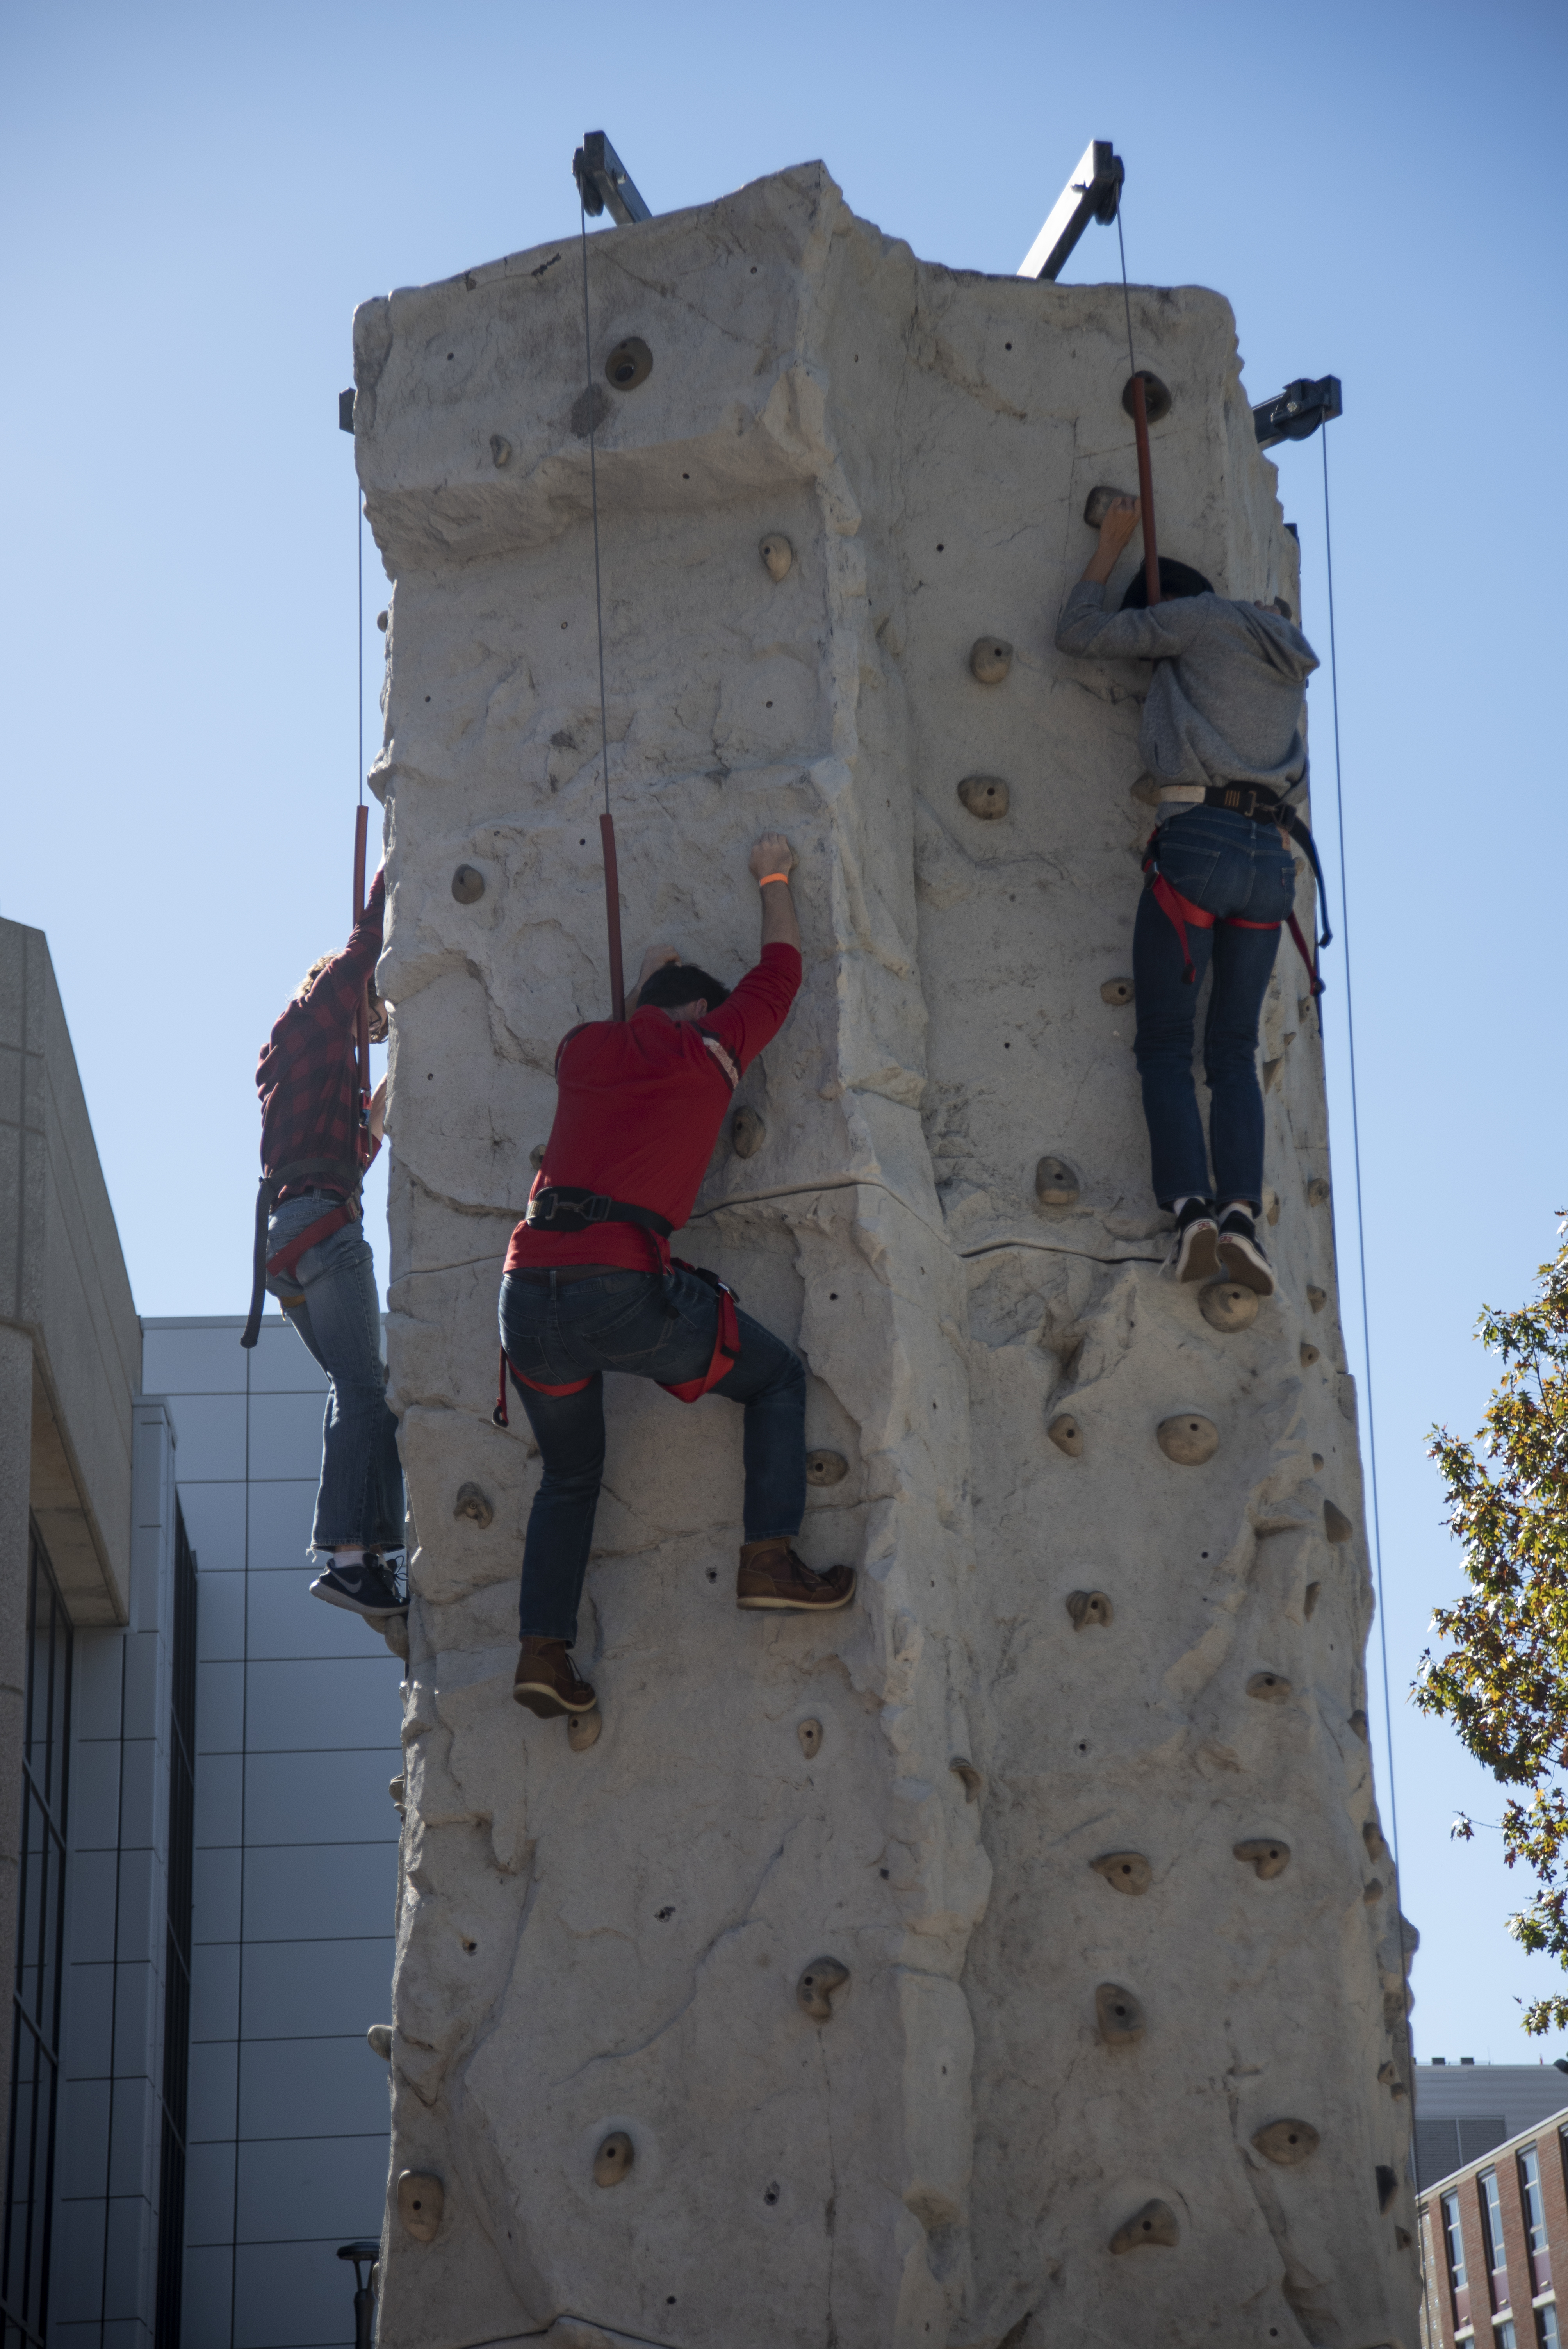 people on a climbing wall